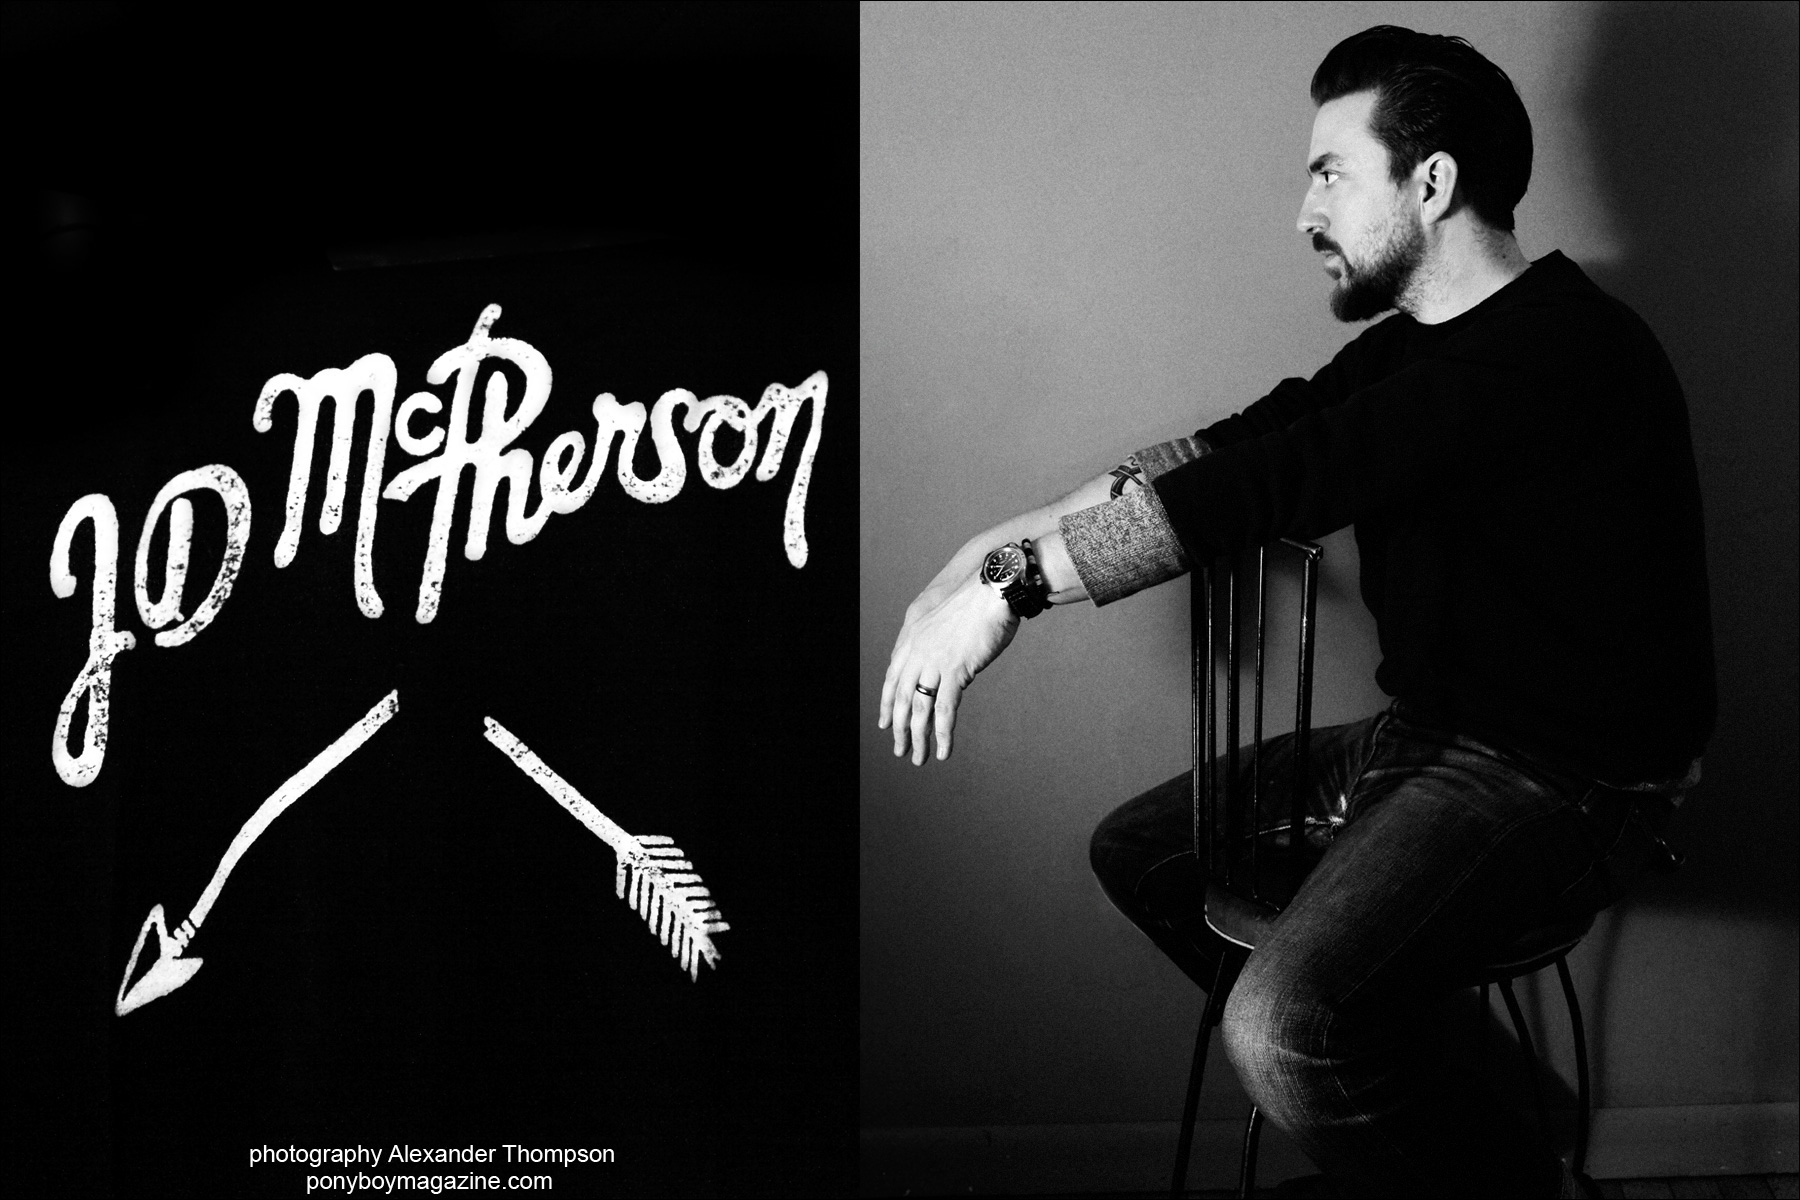 Opening image of musician JD McPherson, photographed for Ponyboy magazine by Alexander Thompson in New York City.